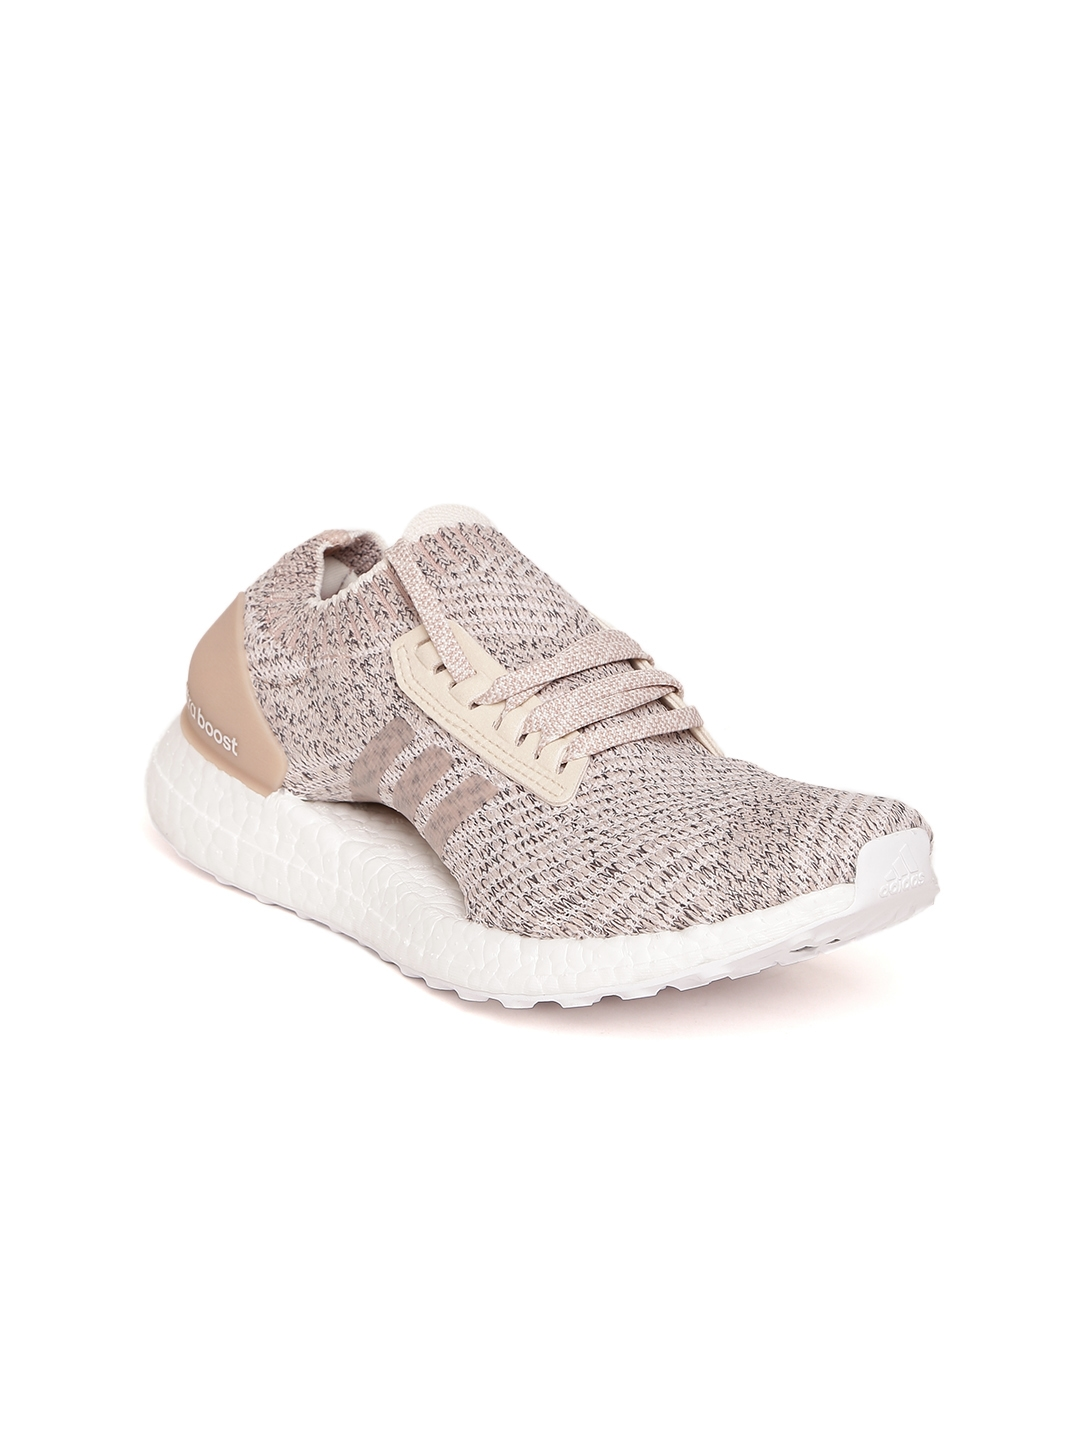 9babbf55aec8a8 Buy Adidas Women Beige Ultraboost X Patterned Running Shoes - Sports ...